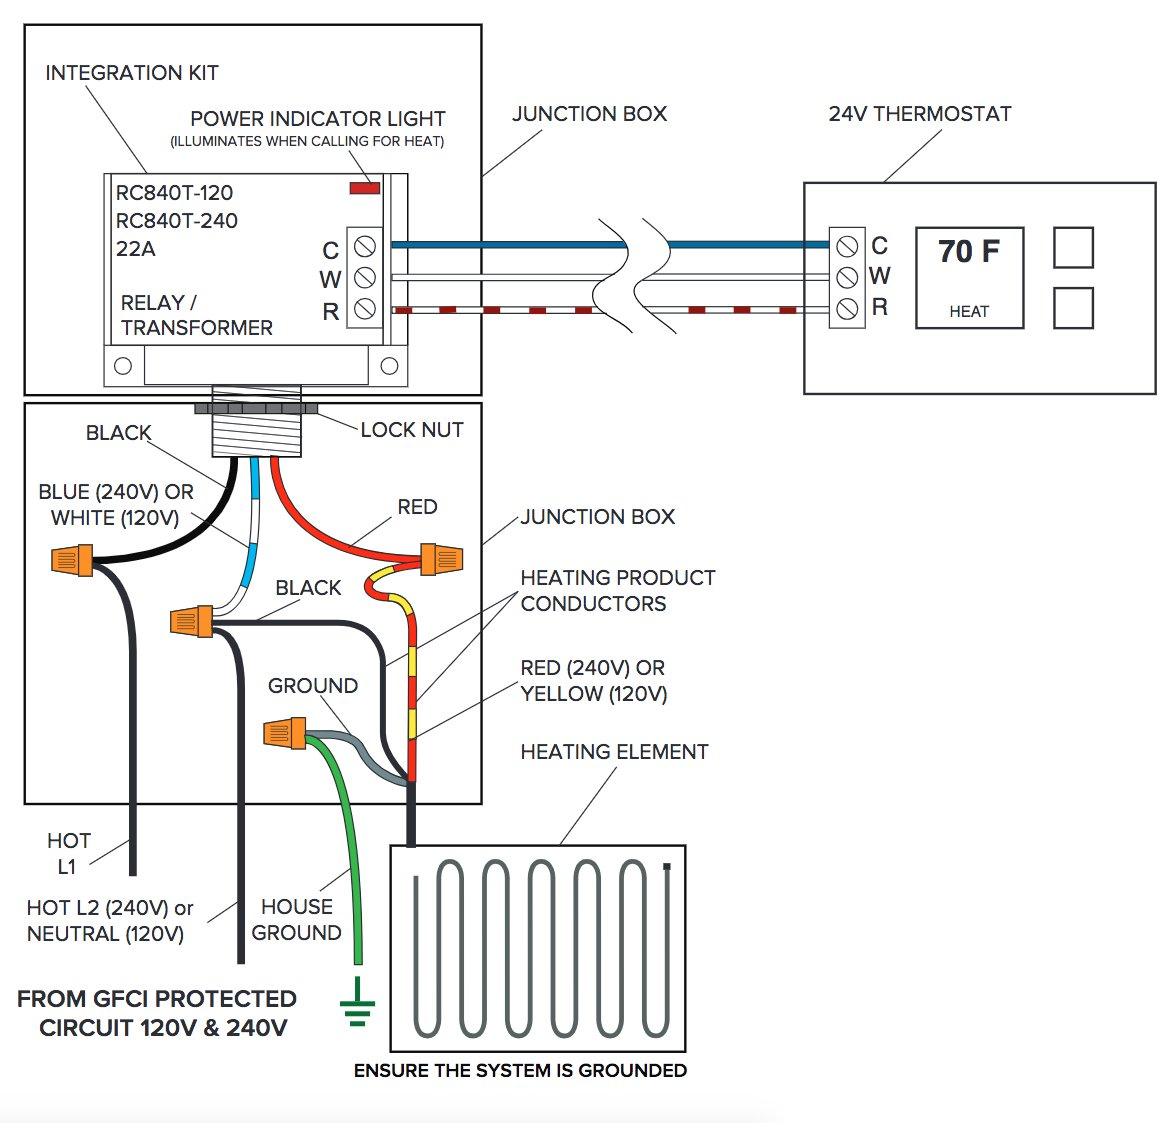 hight resolution of third party control integration relay with built in transformerwiring diagram for floor heating relay with built